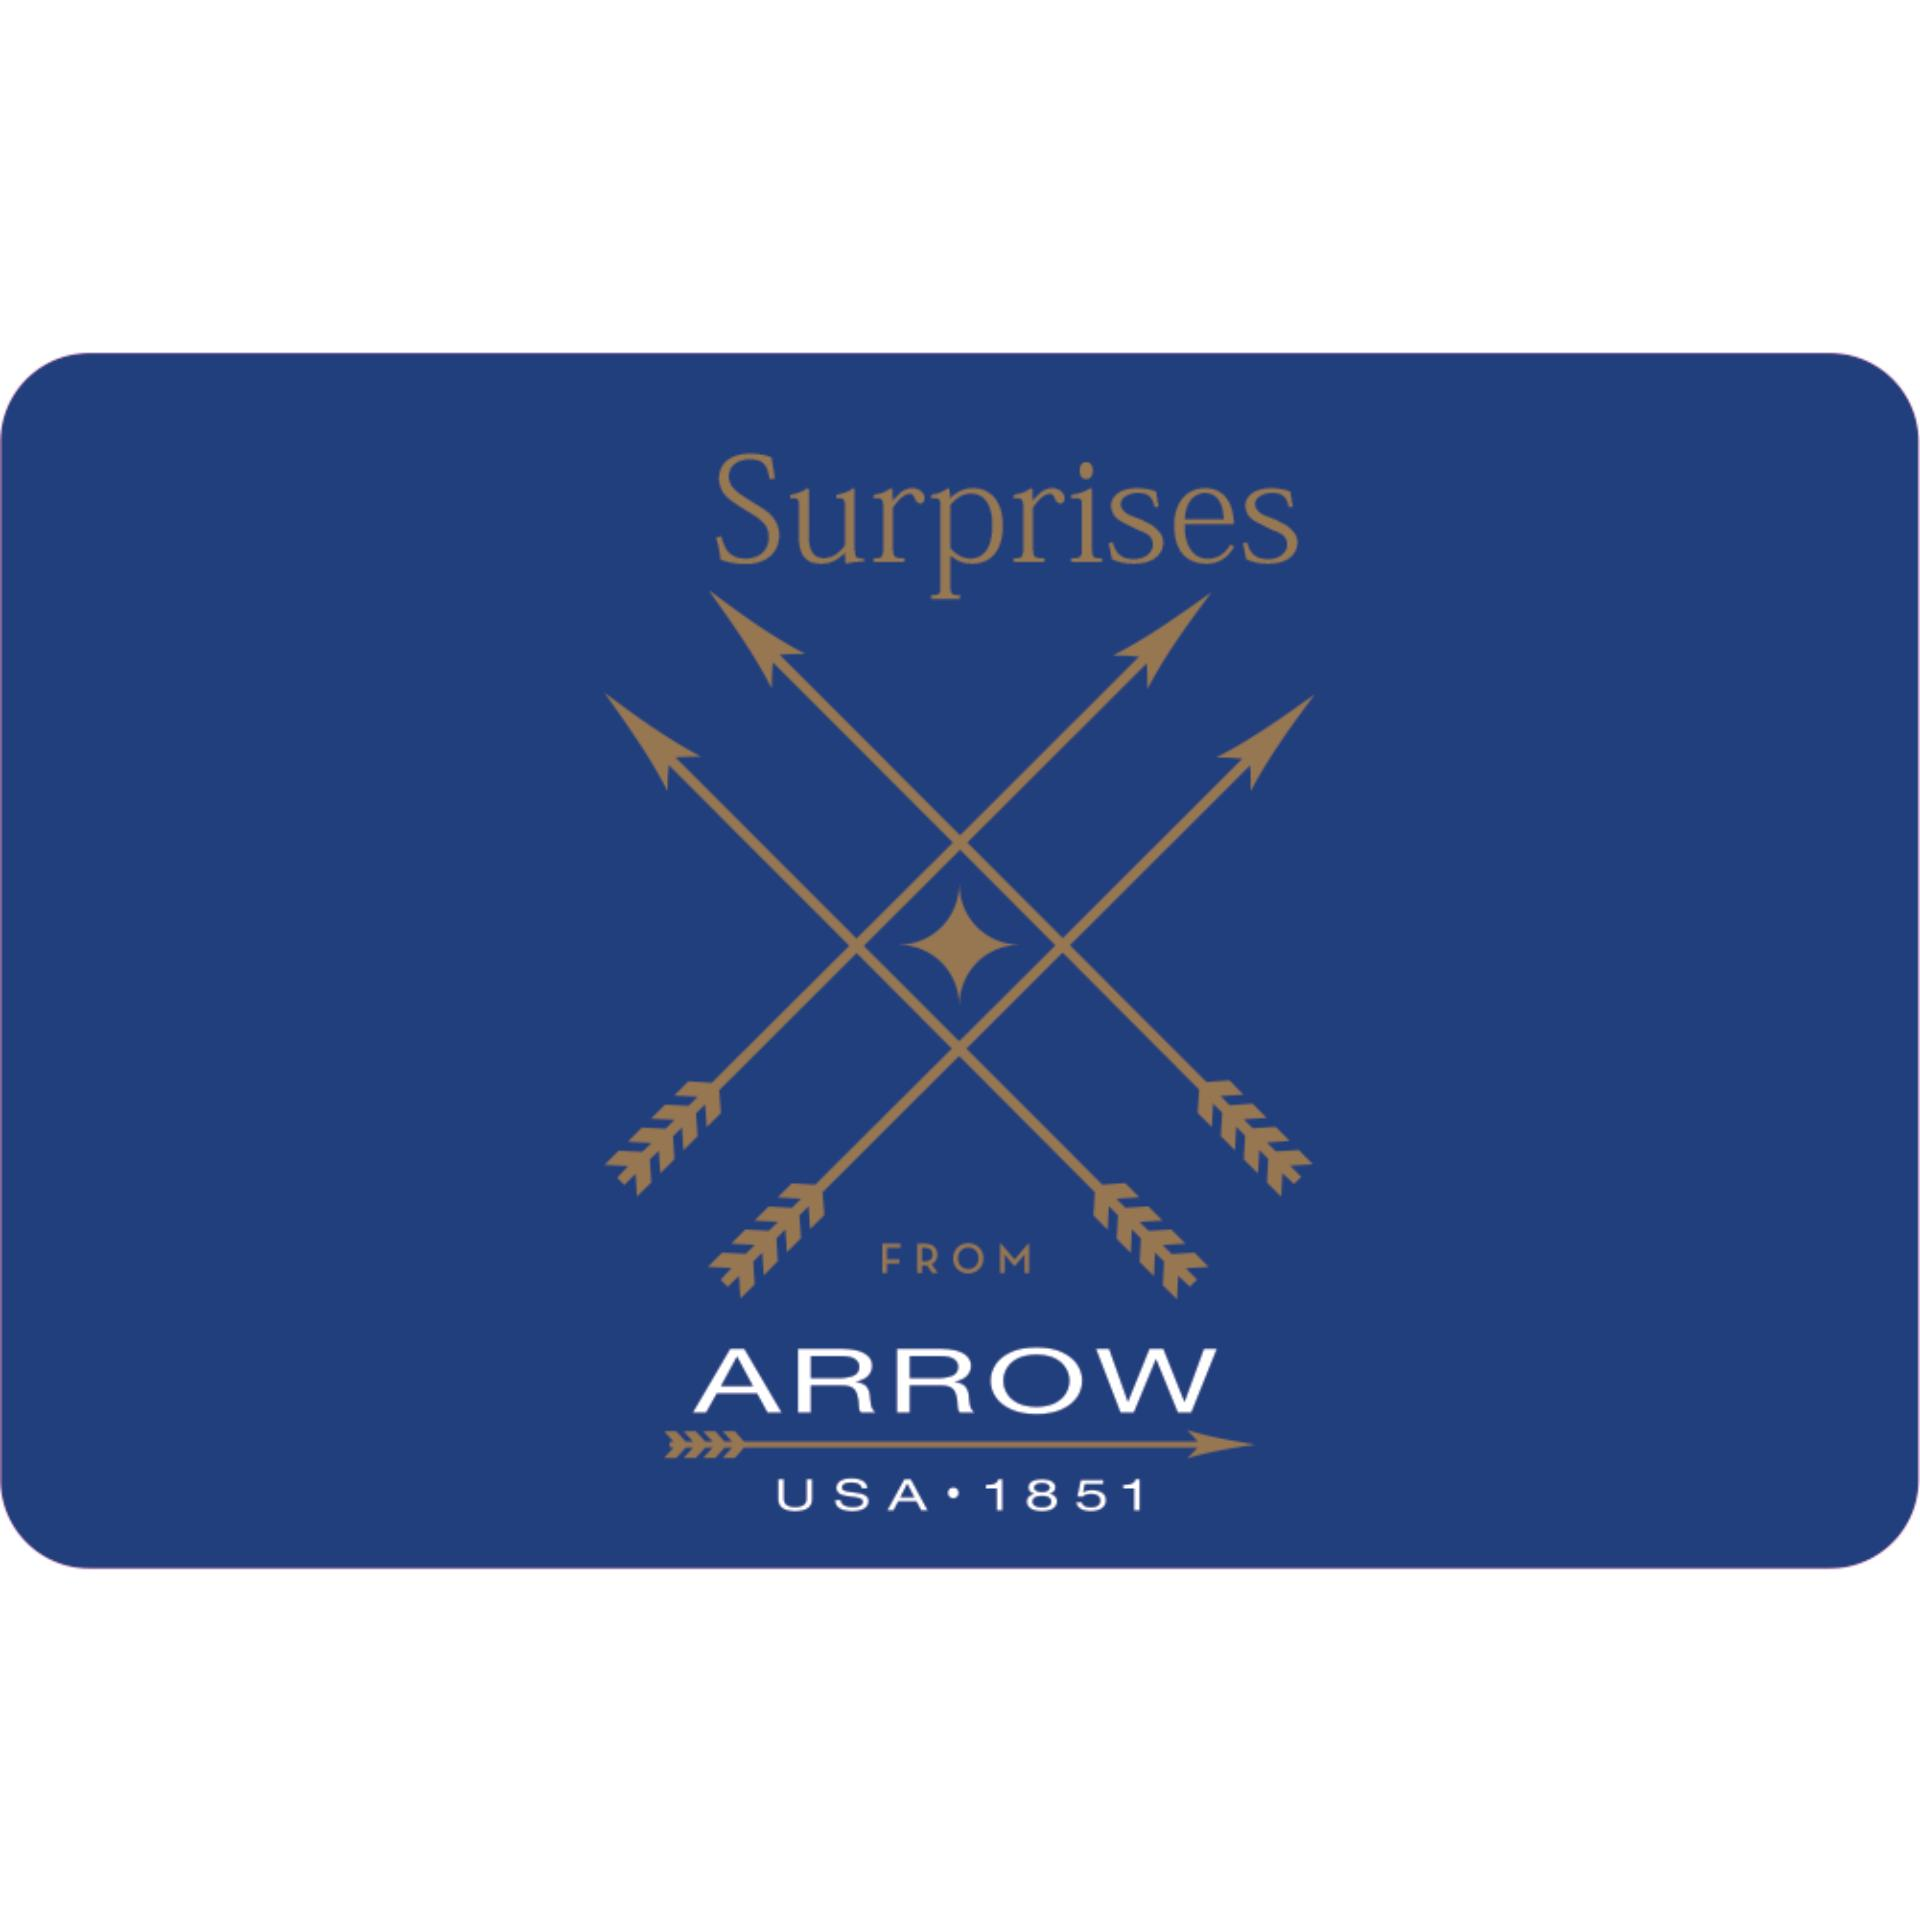 Arrow Digital Gift Cards: Rs. 4005 By Qwikcilver Store.